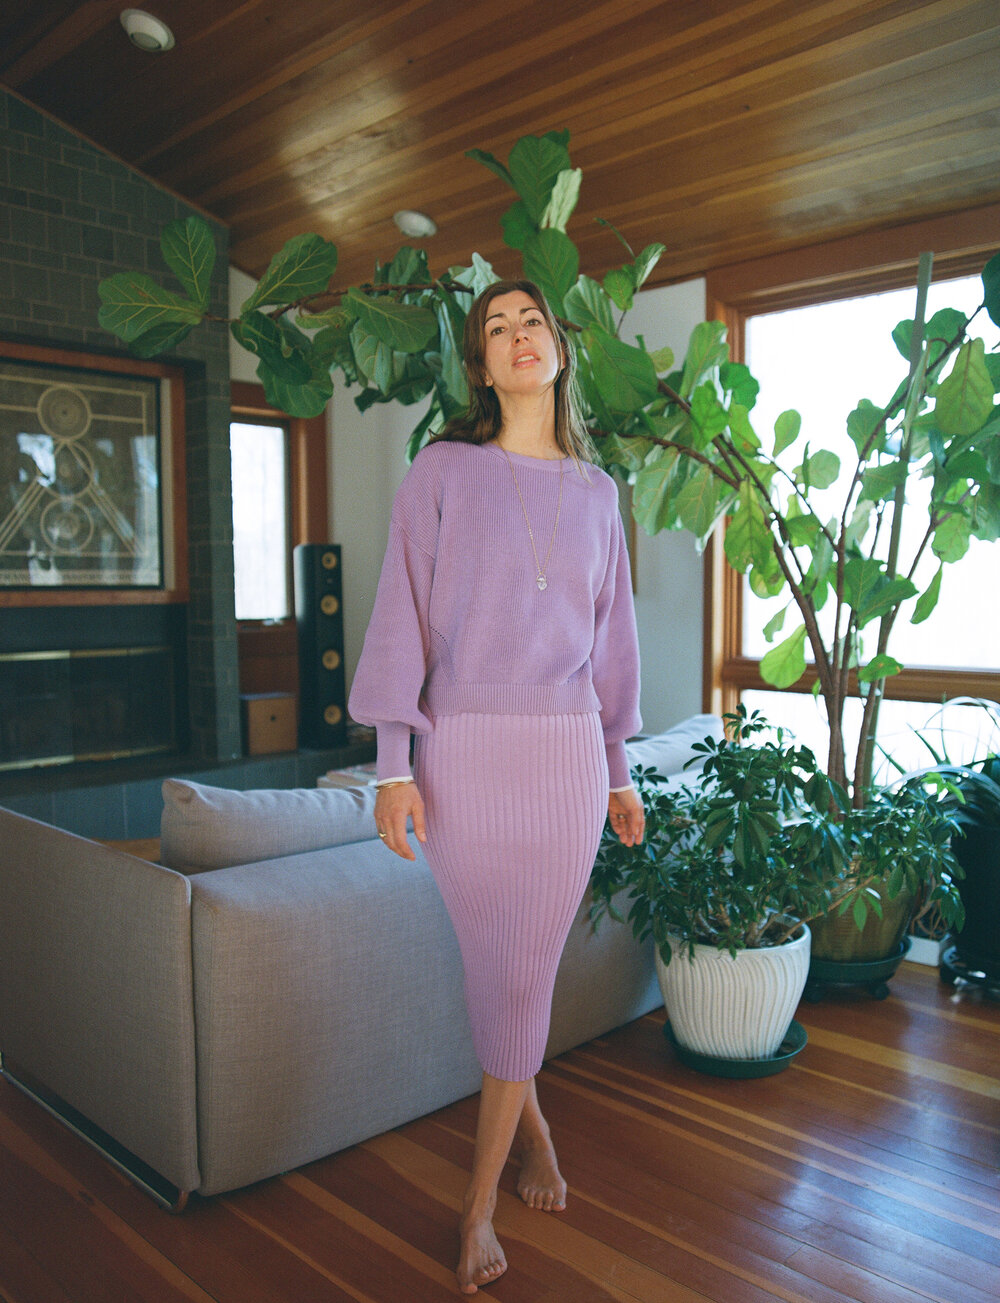 Jana wears  Layla sweater  in Azulene  SHOP HERE  +  Kira skirt  ( only available in Tobacco )  SHOP HERE